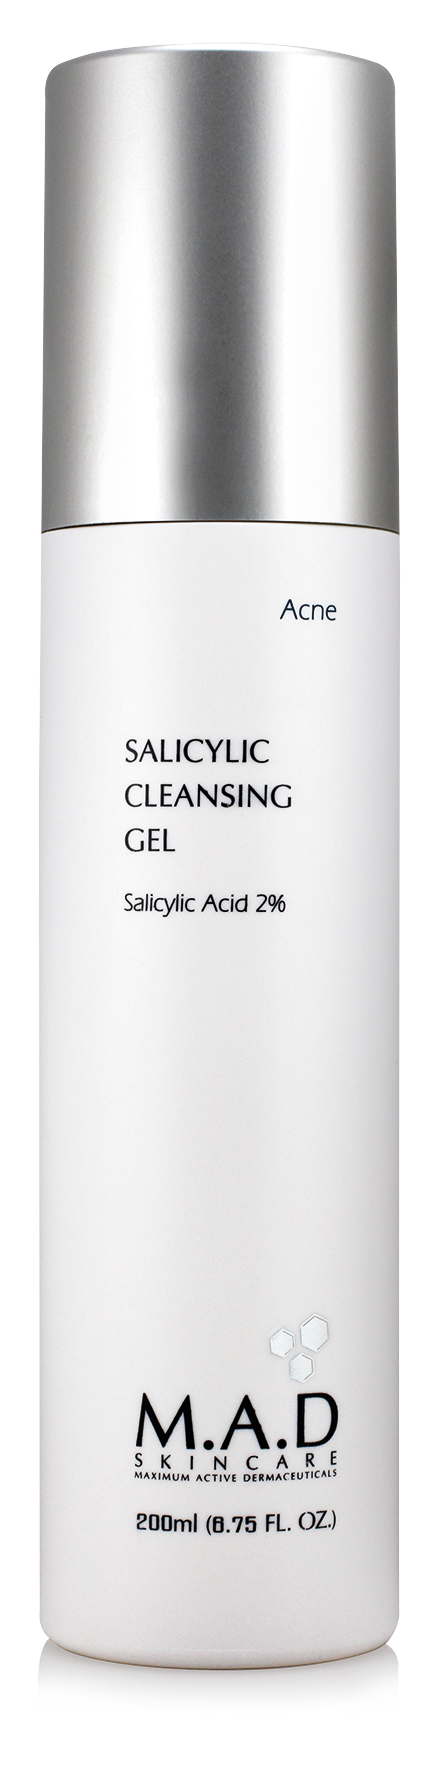 MAD SALICYLIC CLEANSING GEL